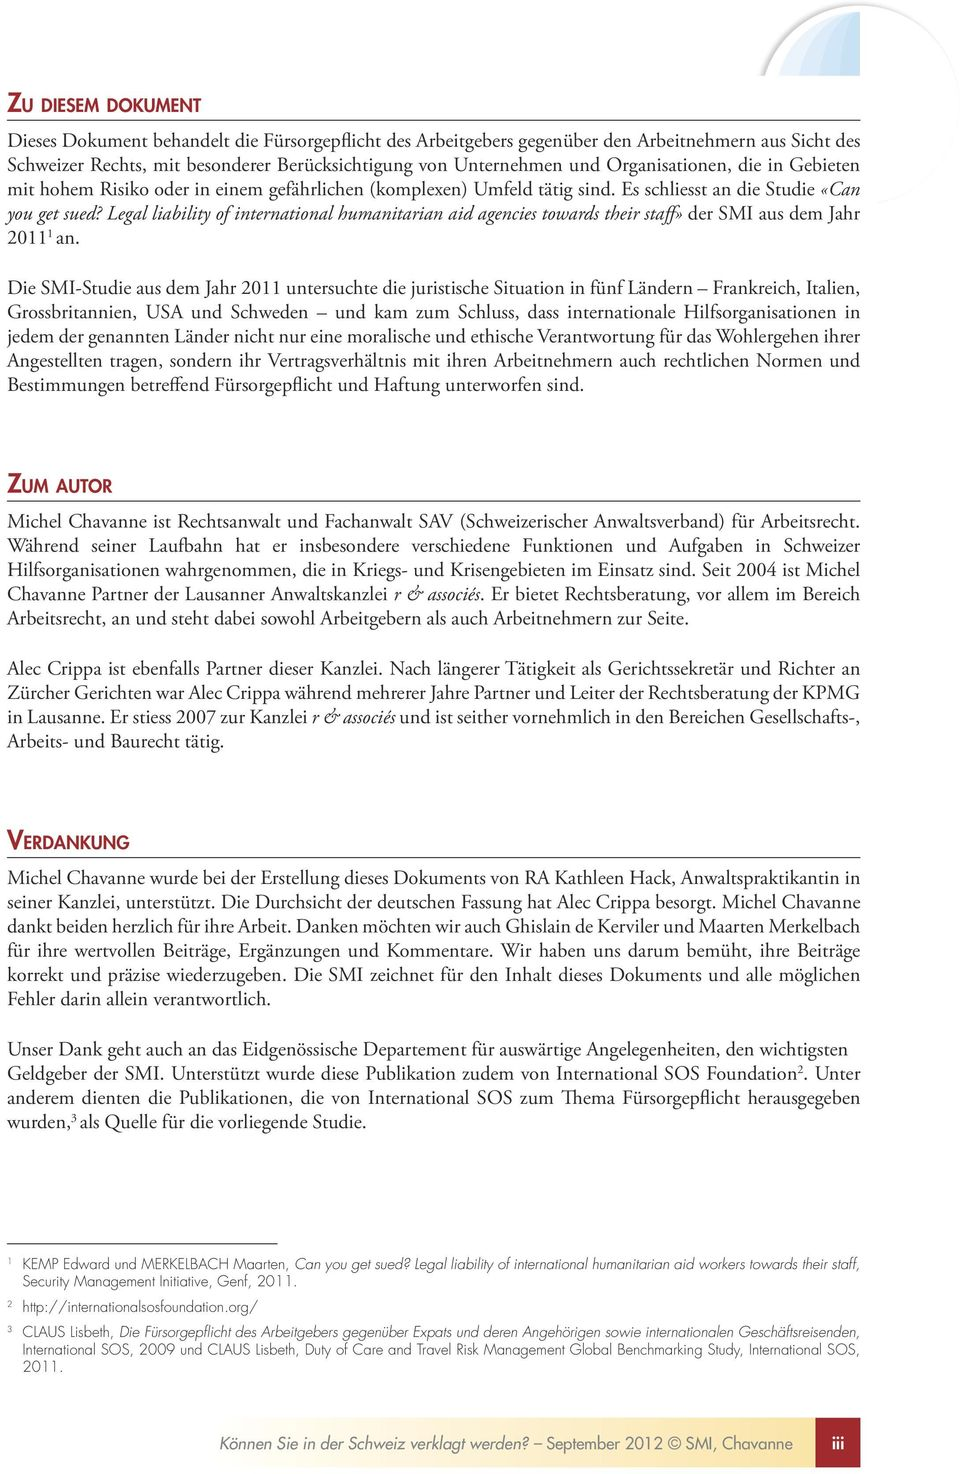 Legal liability of international humanitarian aid agencies towards their staff» der SMI aus dem Jahr 2011 1 an.